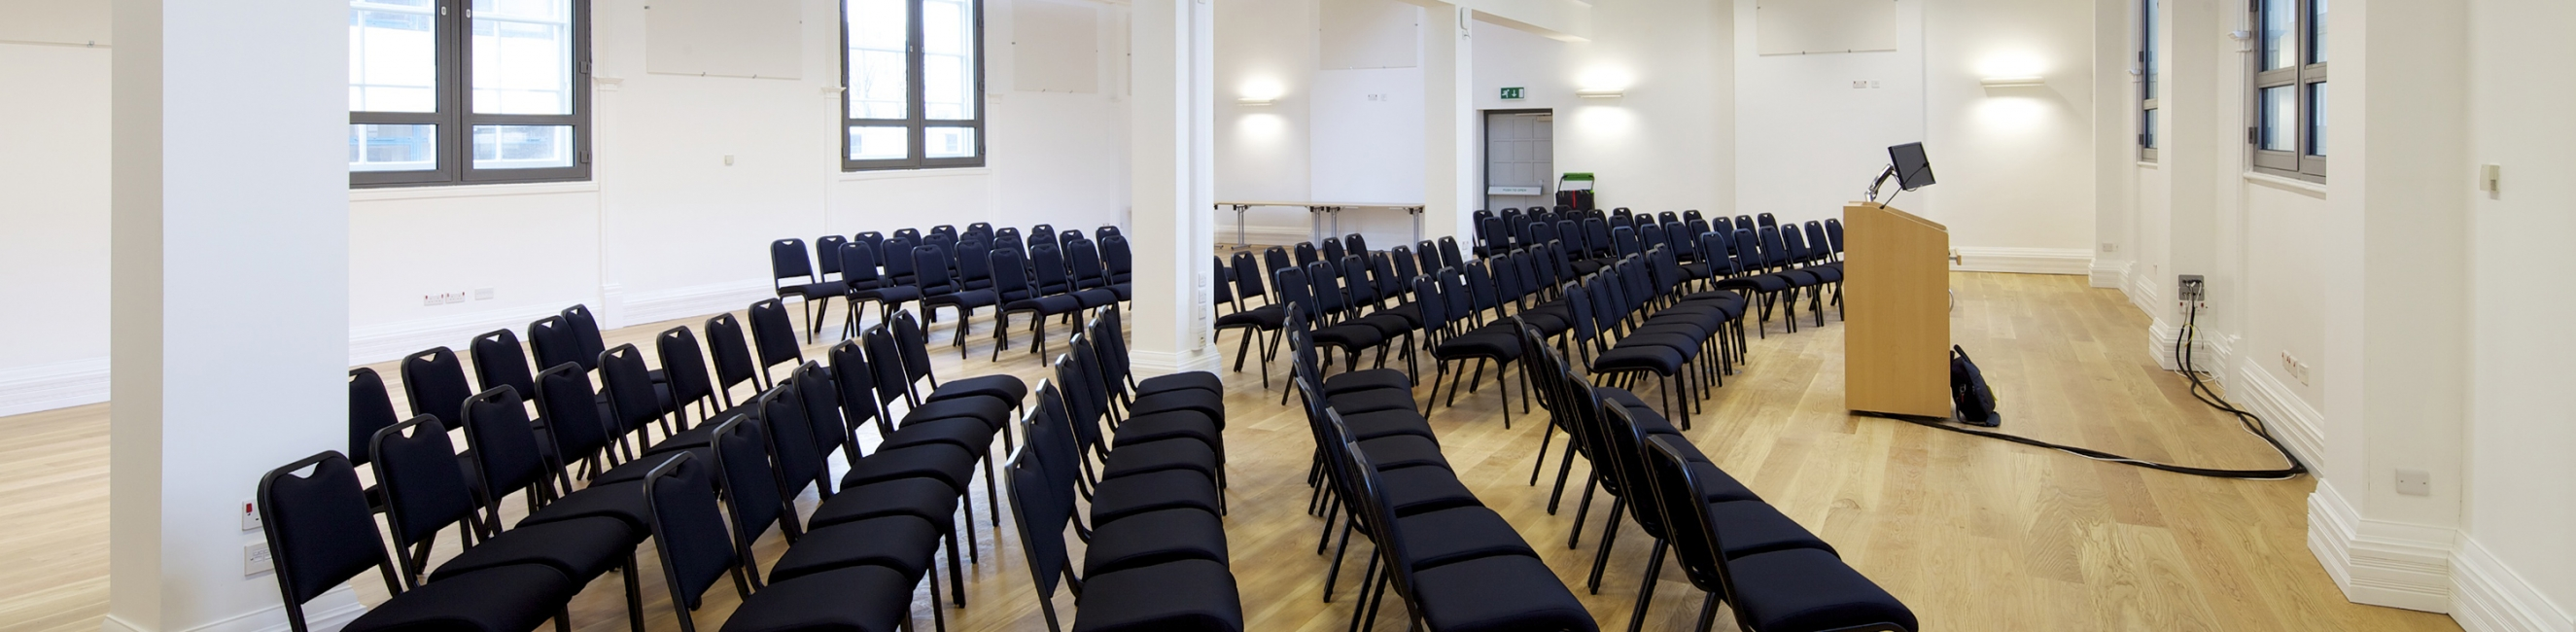 Weston College Facilities, Conference Centre,